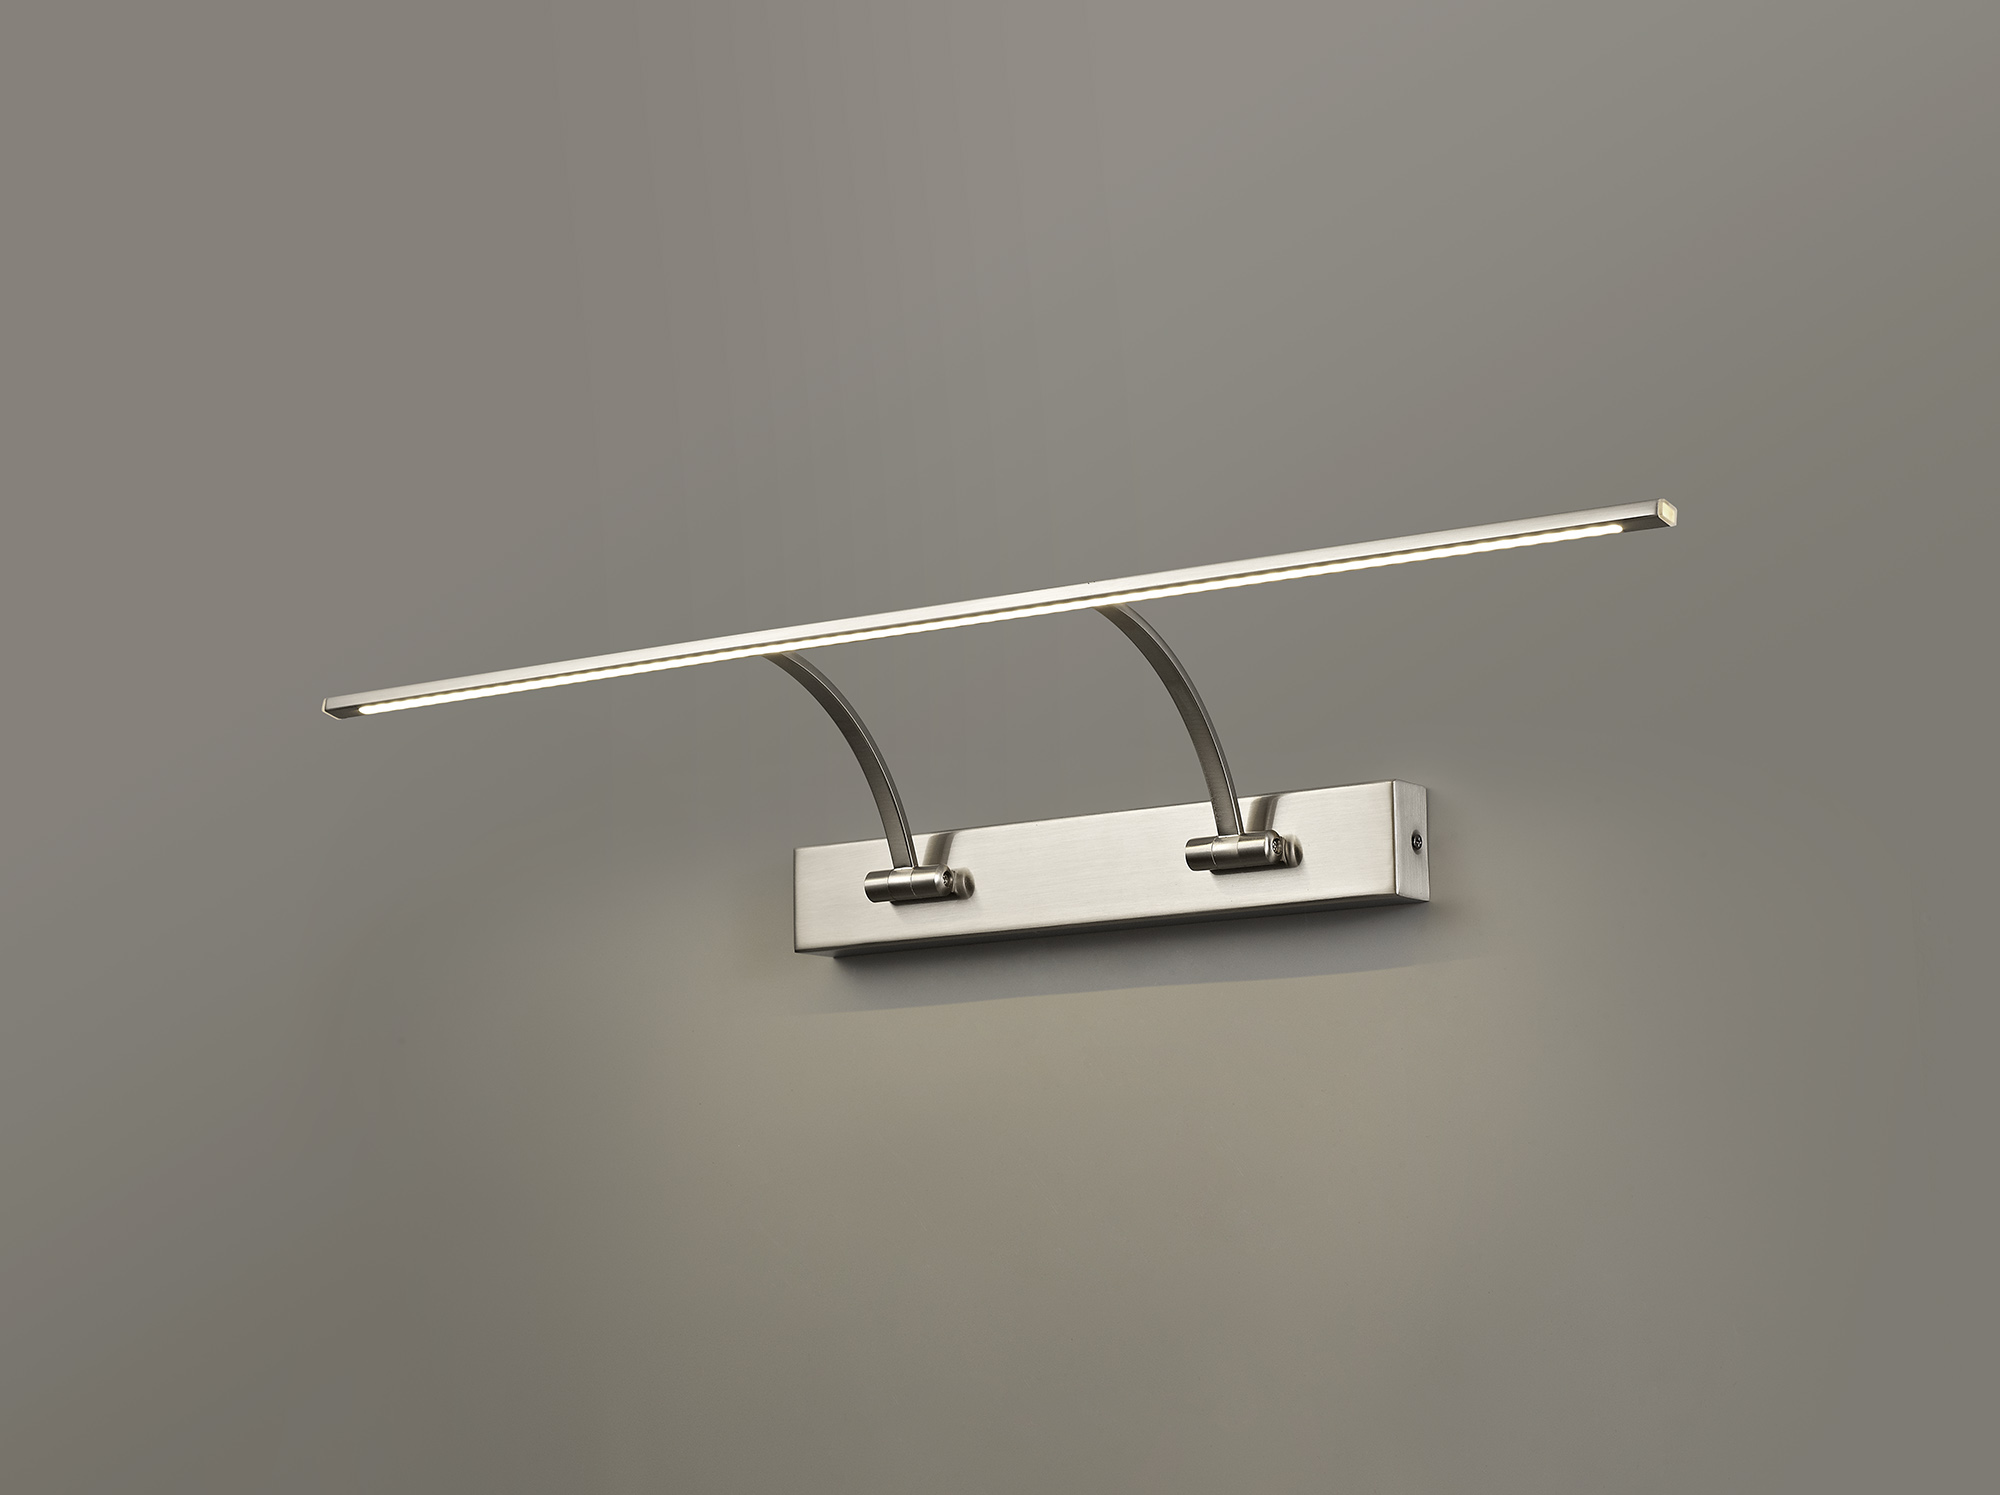 Small 2 Arm Wall Lamp/Picture Light, 1 x 14W LED, 3000K, 1070lm, 3yrs Warranty